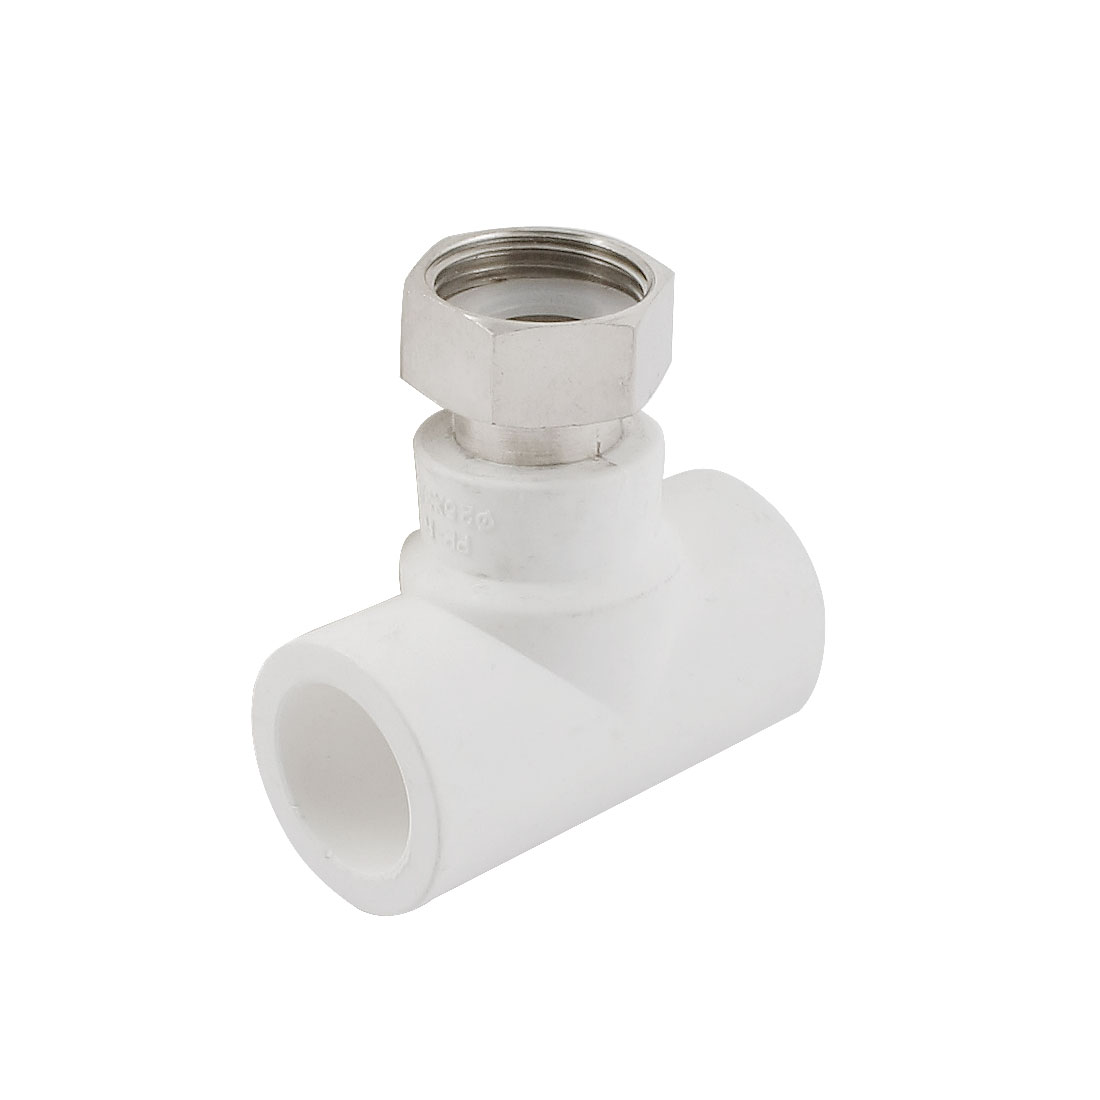 Water Hose Pipe Tube Tee T Fitting Connector 25mm to 3/4PT Female Thread